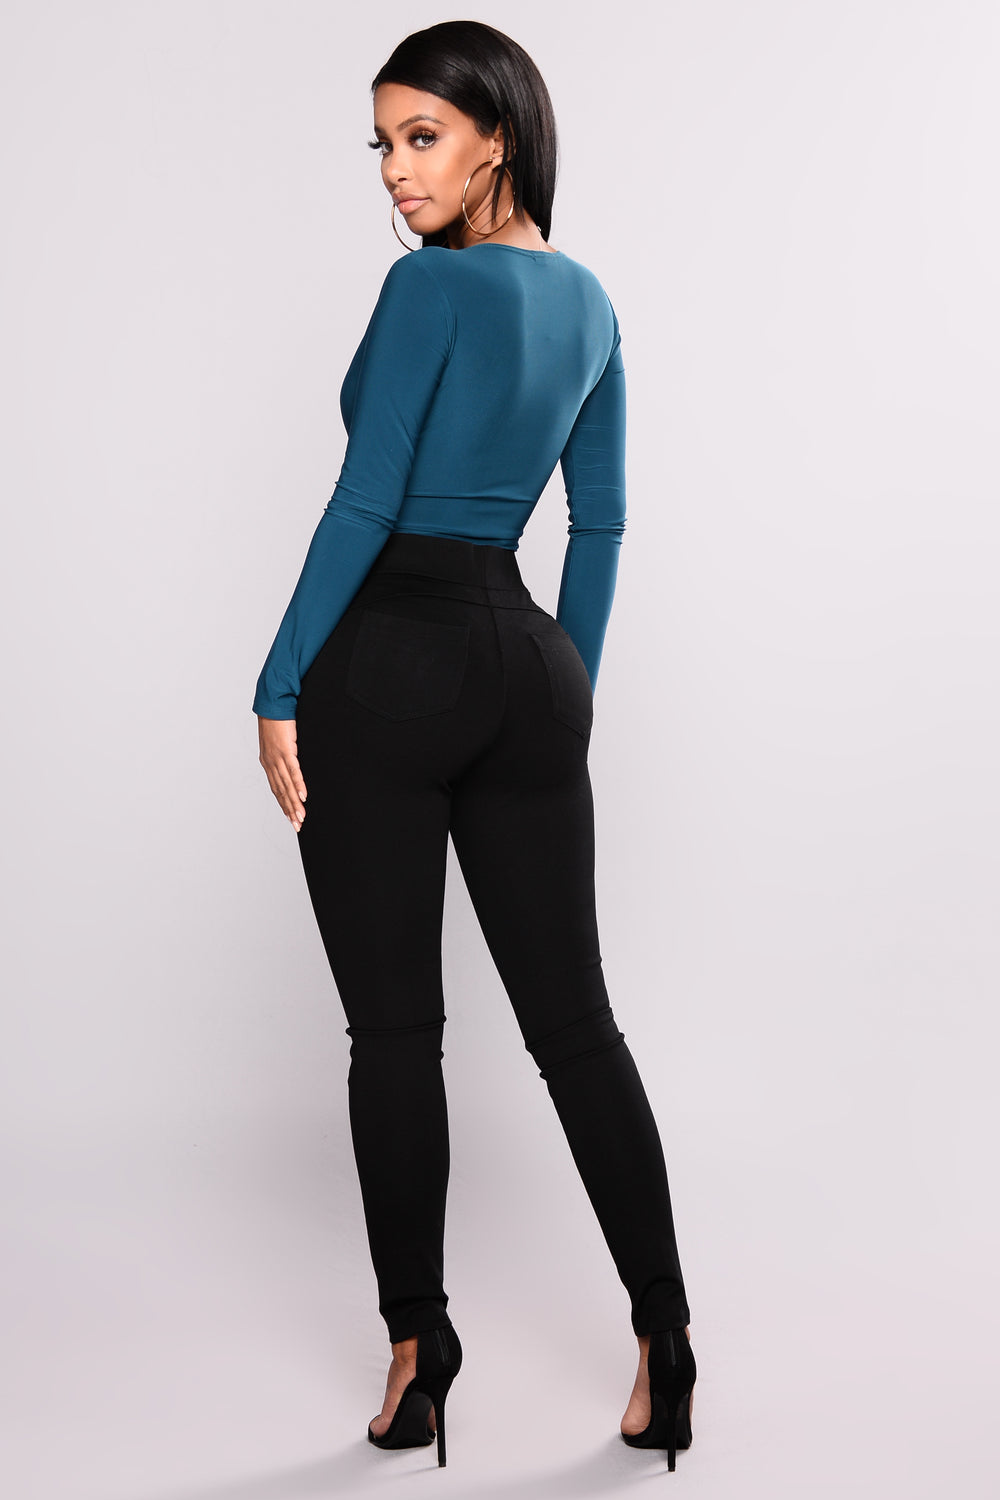 Get Outta Town Zip up Leggings -  Black